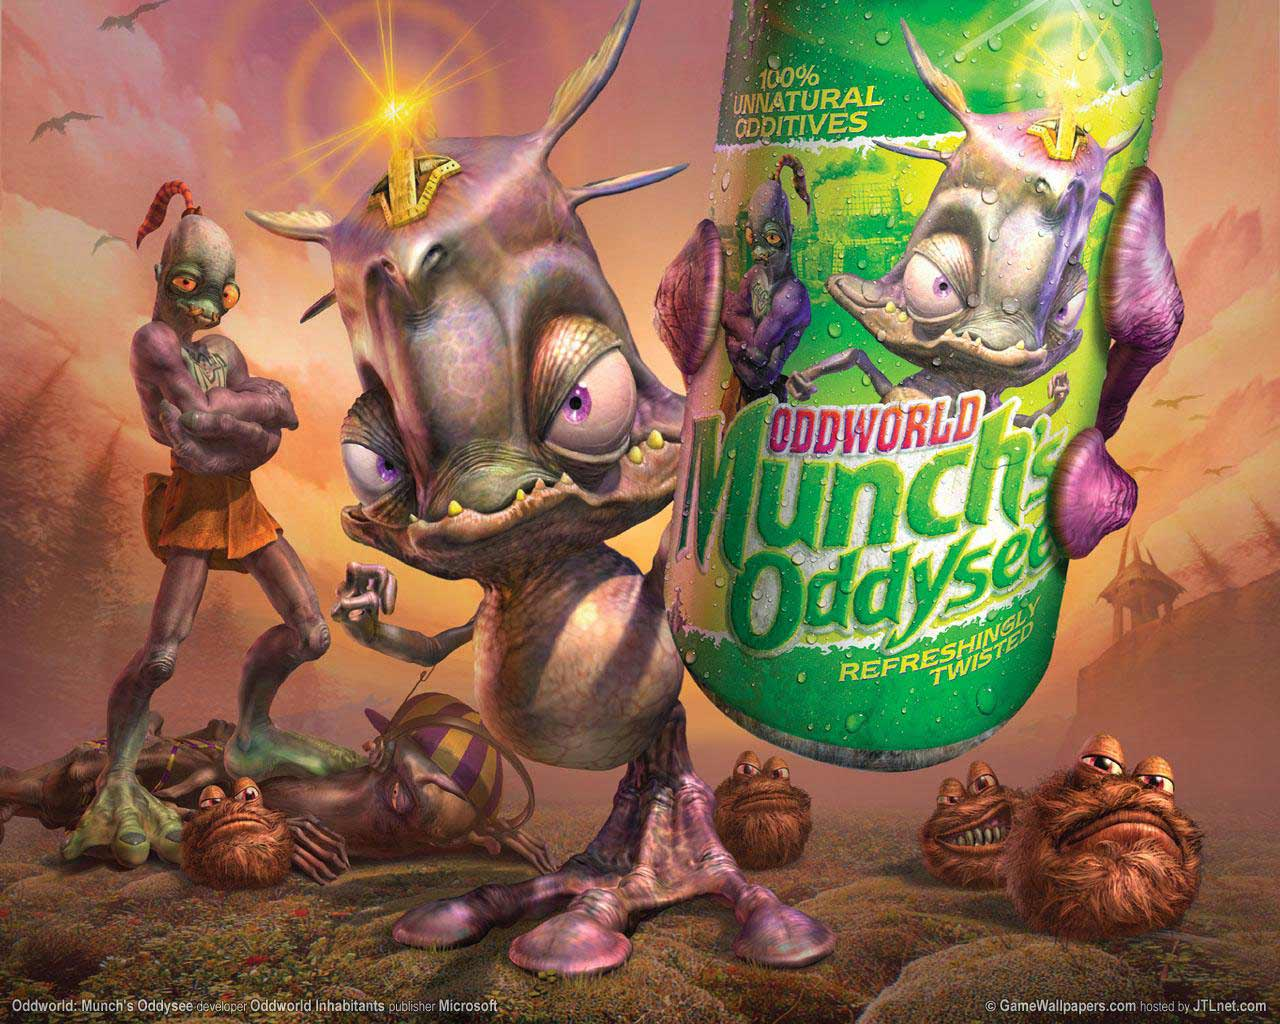 What do you look for in a game? Munch's+Oddysee